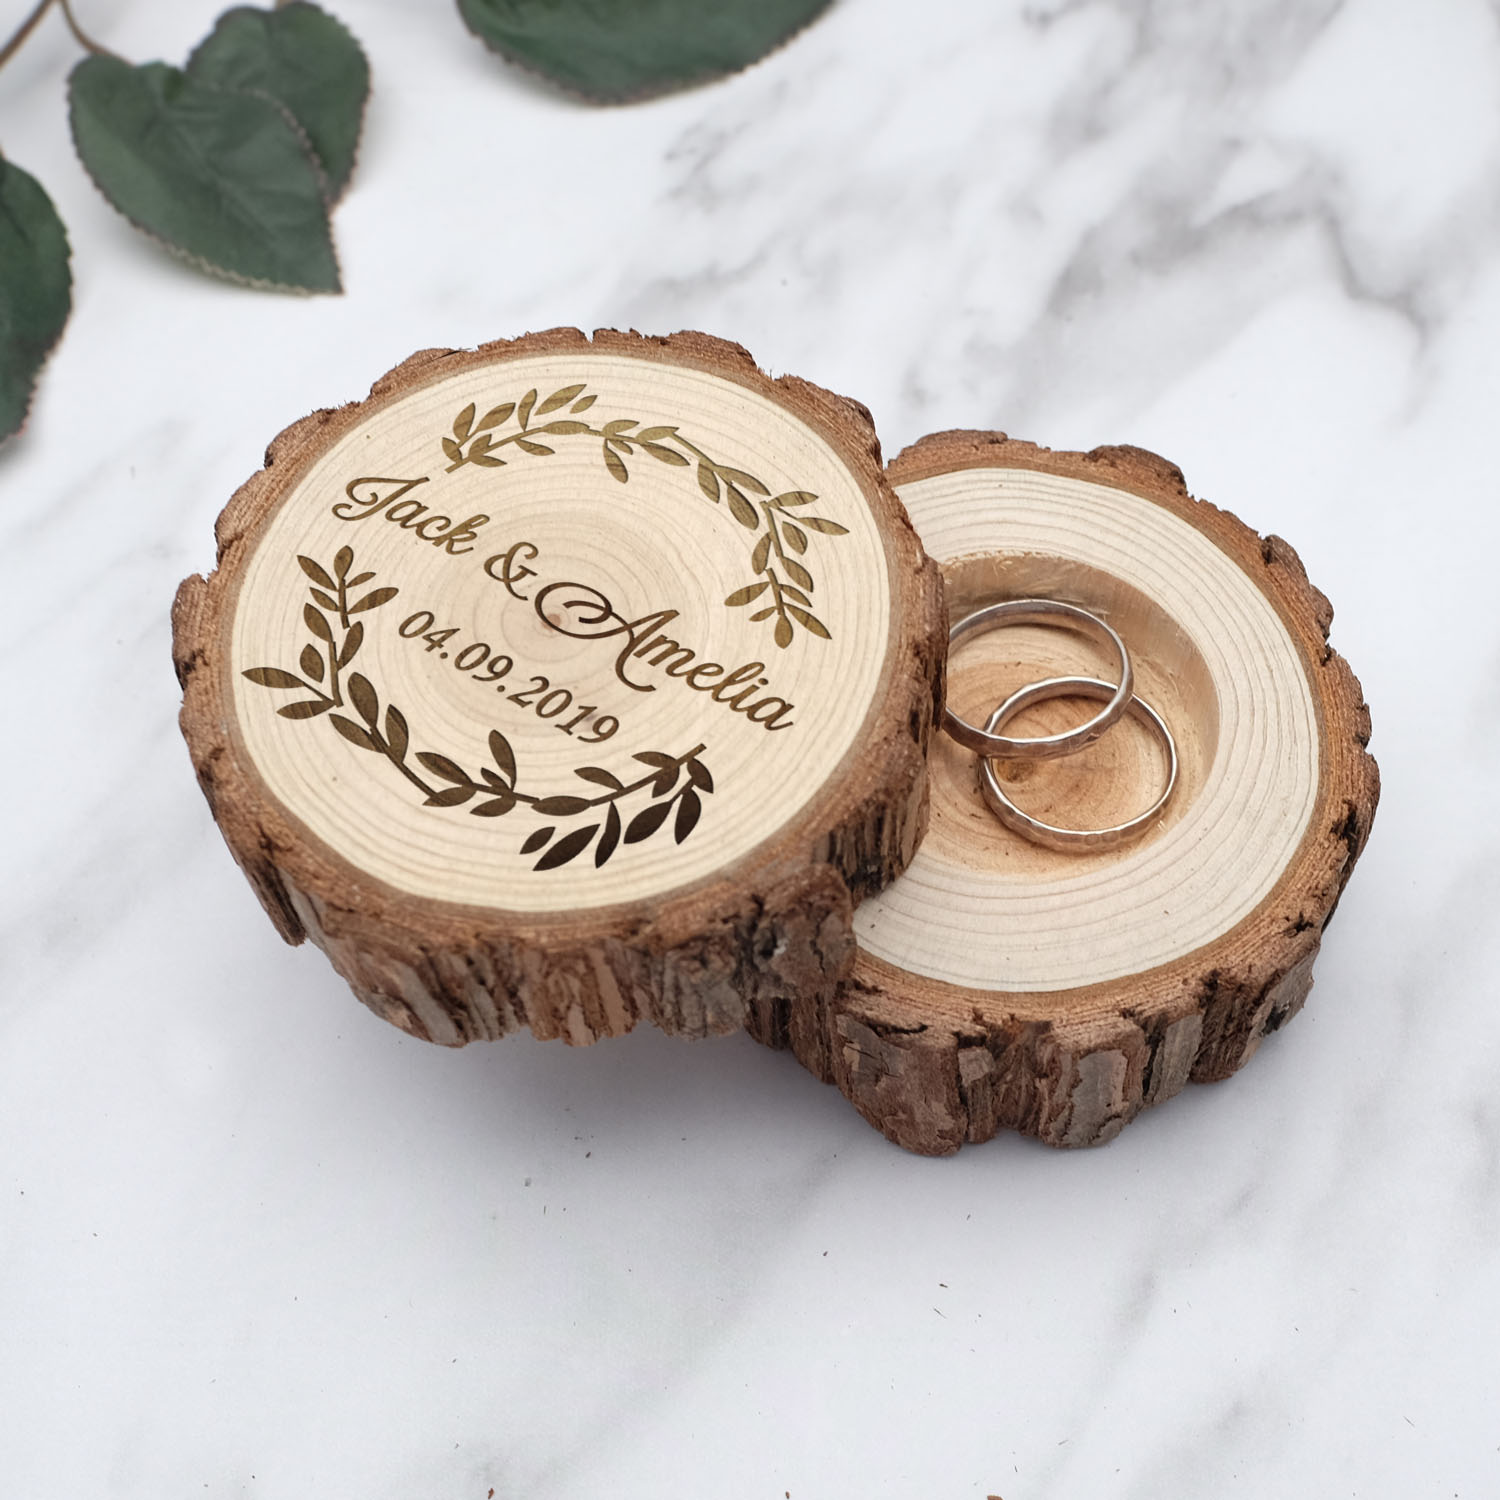 Rustic Wooden Ring Box,Custom Wedding Ring Bearer Box,Engraved Wedding Ring Holder,Jewerly Box,Persoalized Keepsake